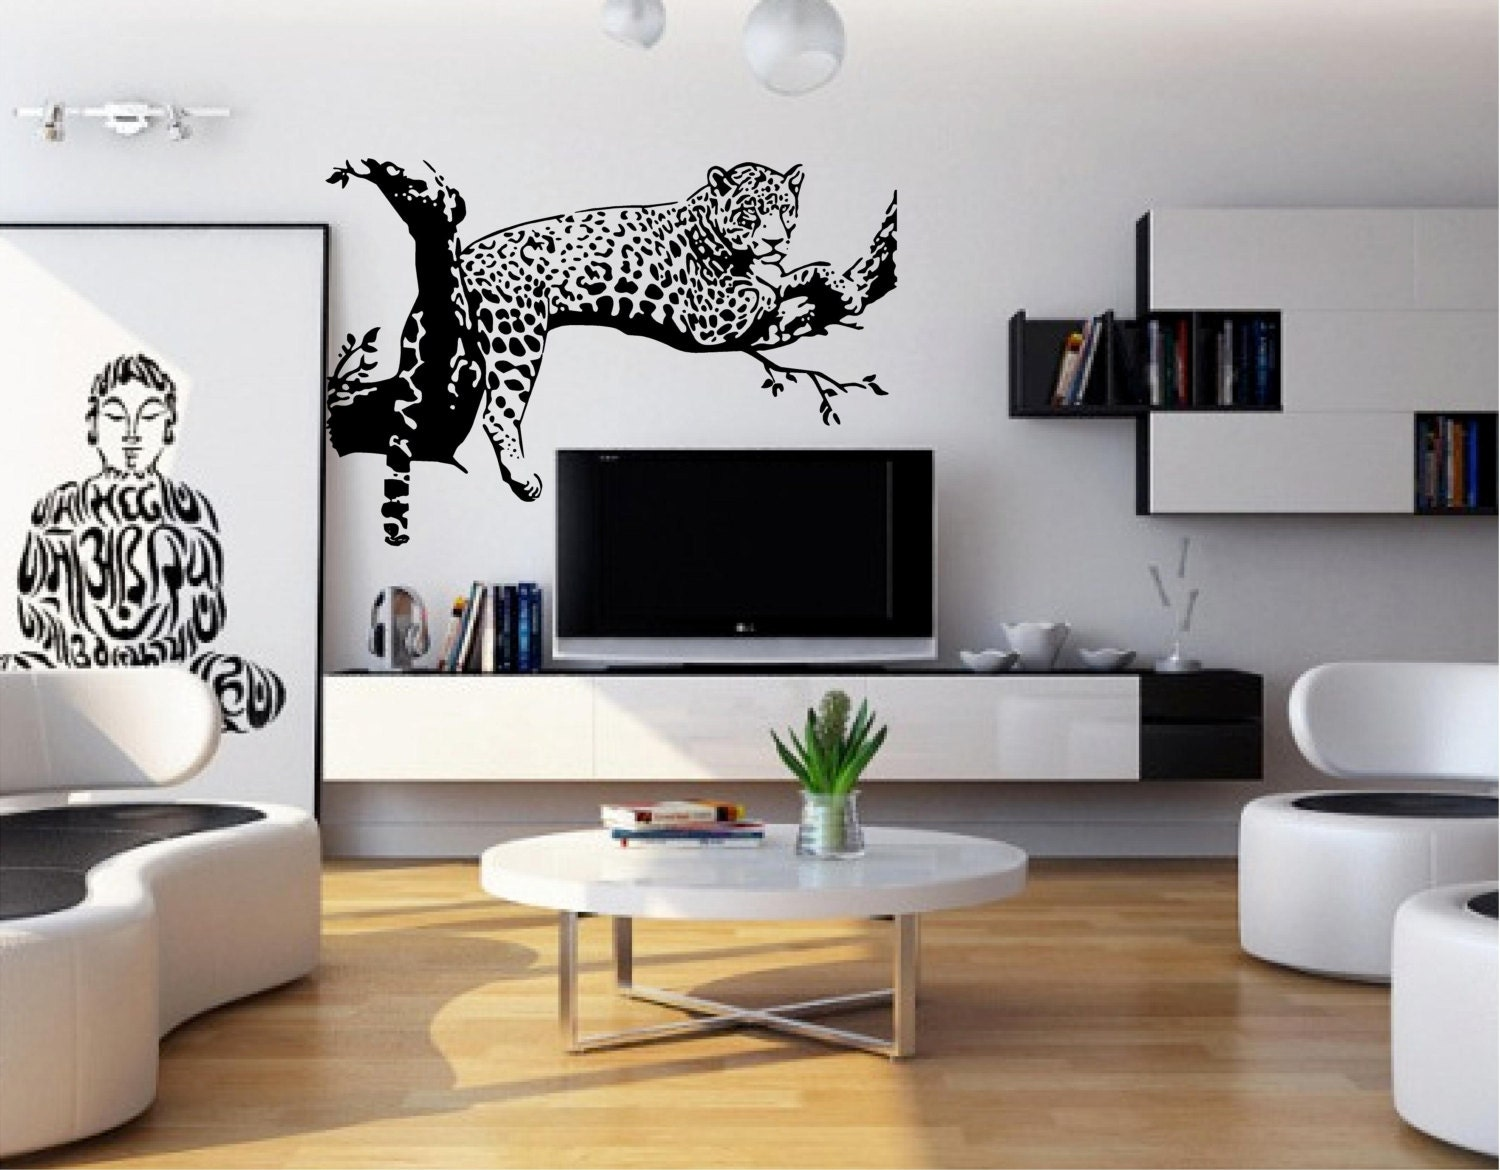 Large Leopard Tiger Art Room Home Removable Decor Wall Decal